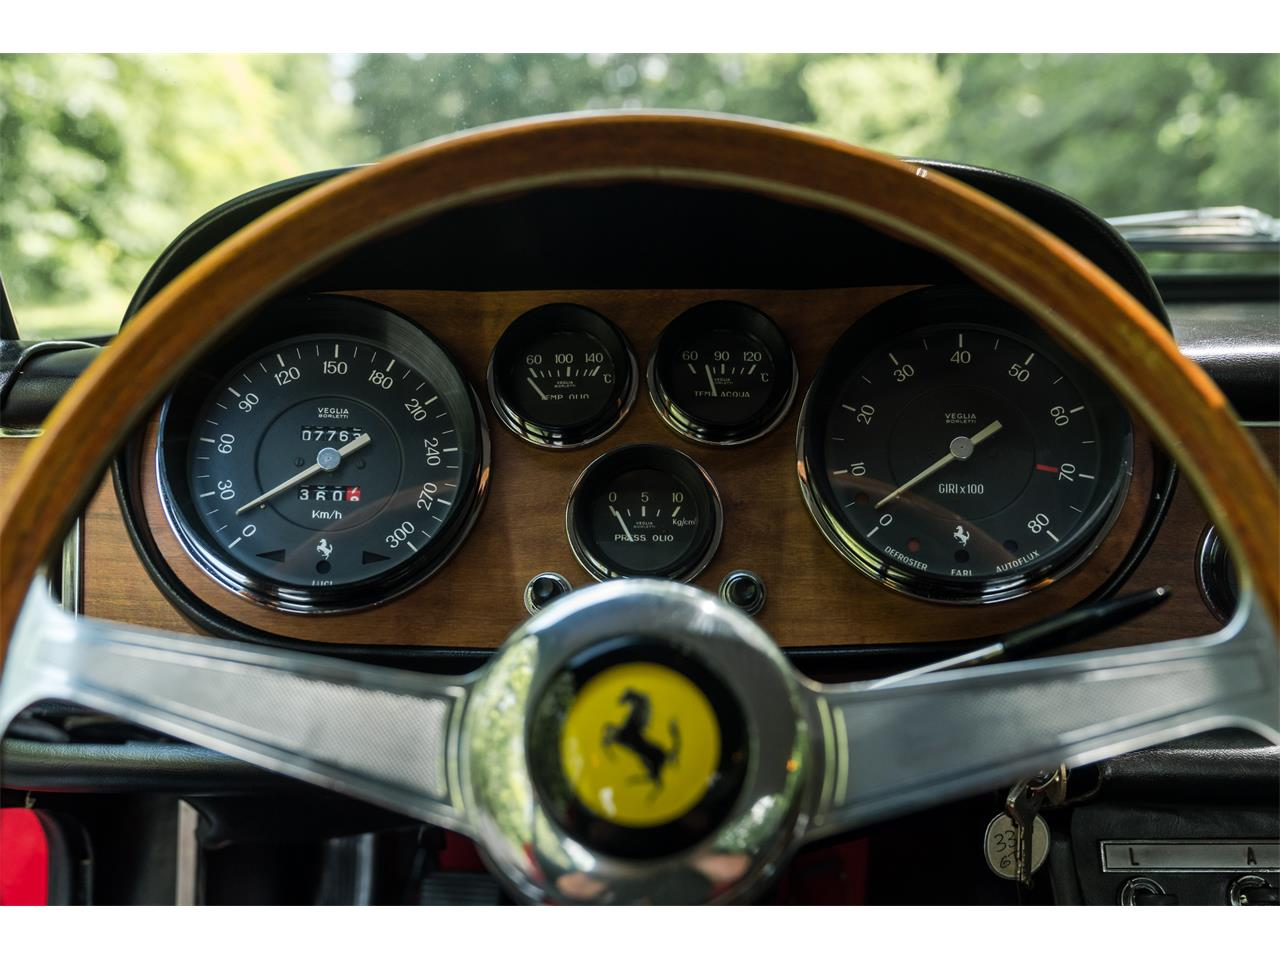 Large Picture of 1967 Ferrari 330 GTC - $650,000.00 Offered by LBI Limited - QNXU